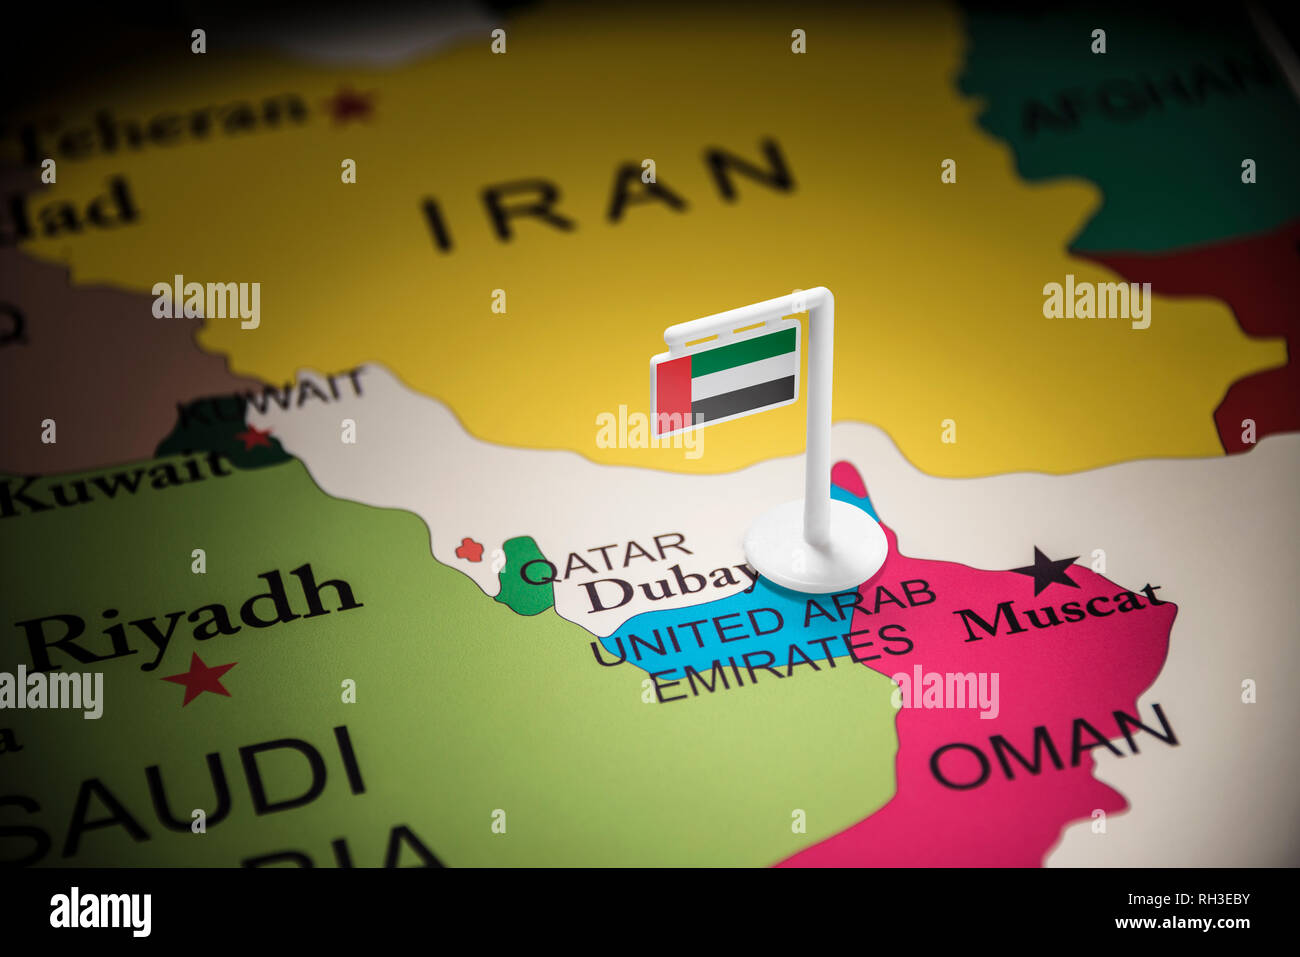 United Arab Emirates marked with a flag on the map - Stock Image